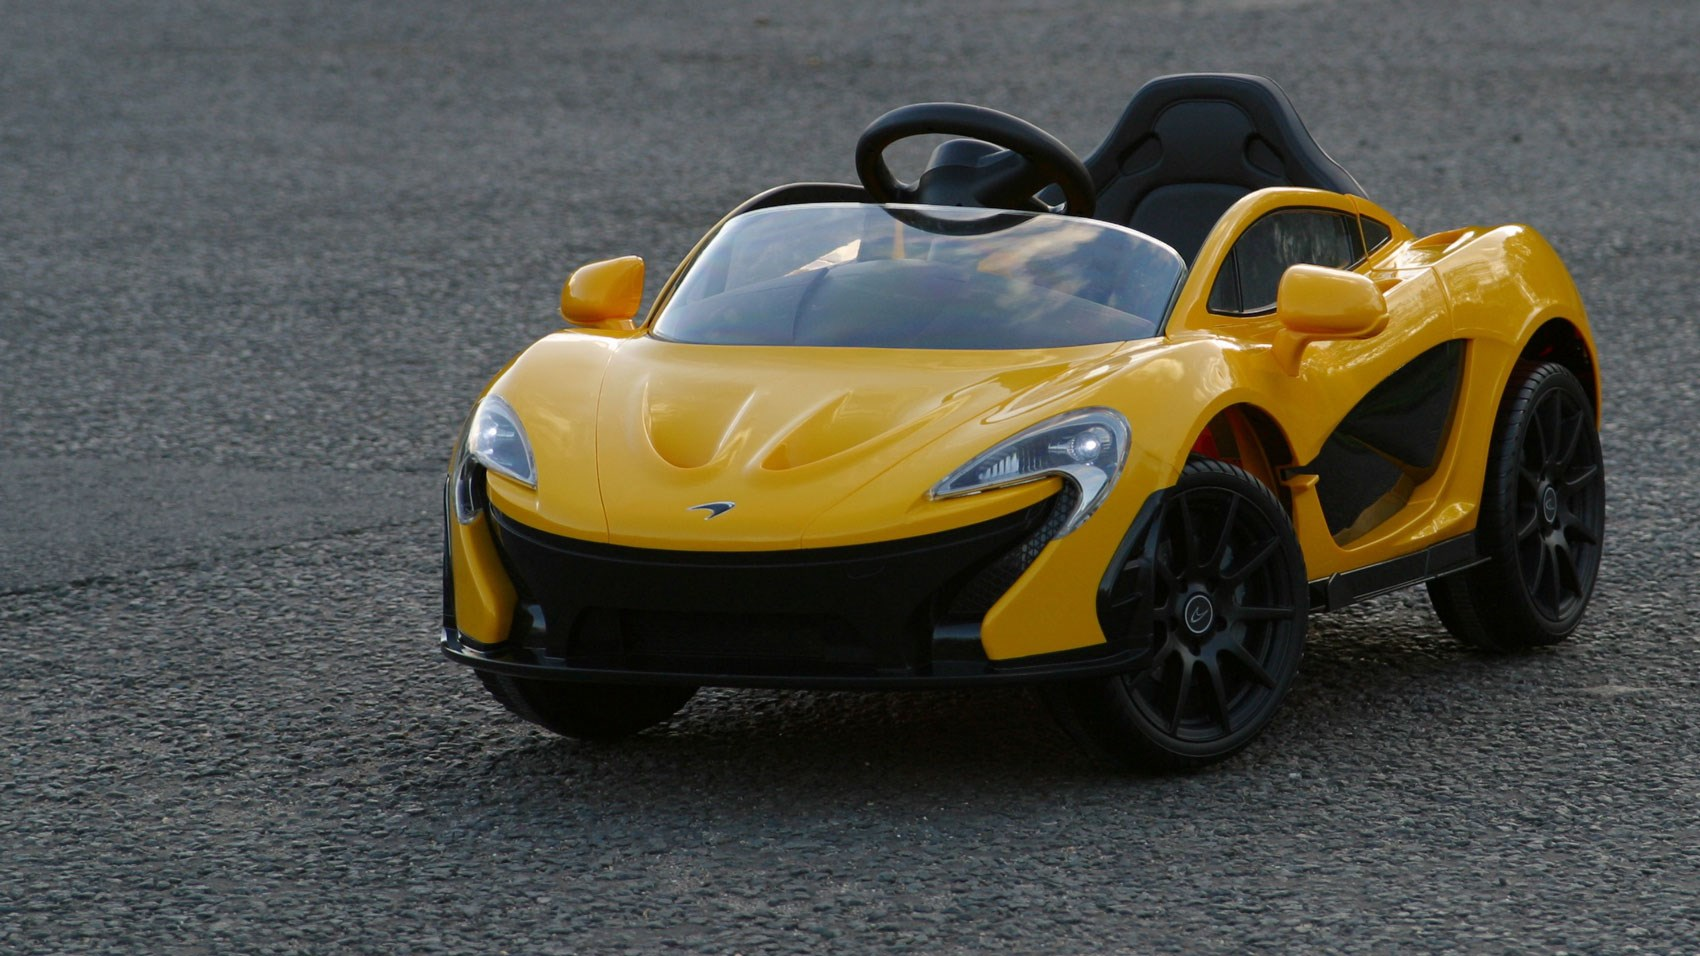 Remarkably Accurate Styling Mimics The Real Mclaren P1 S